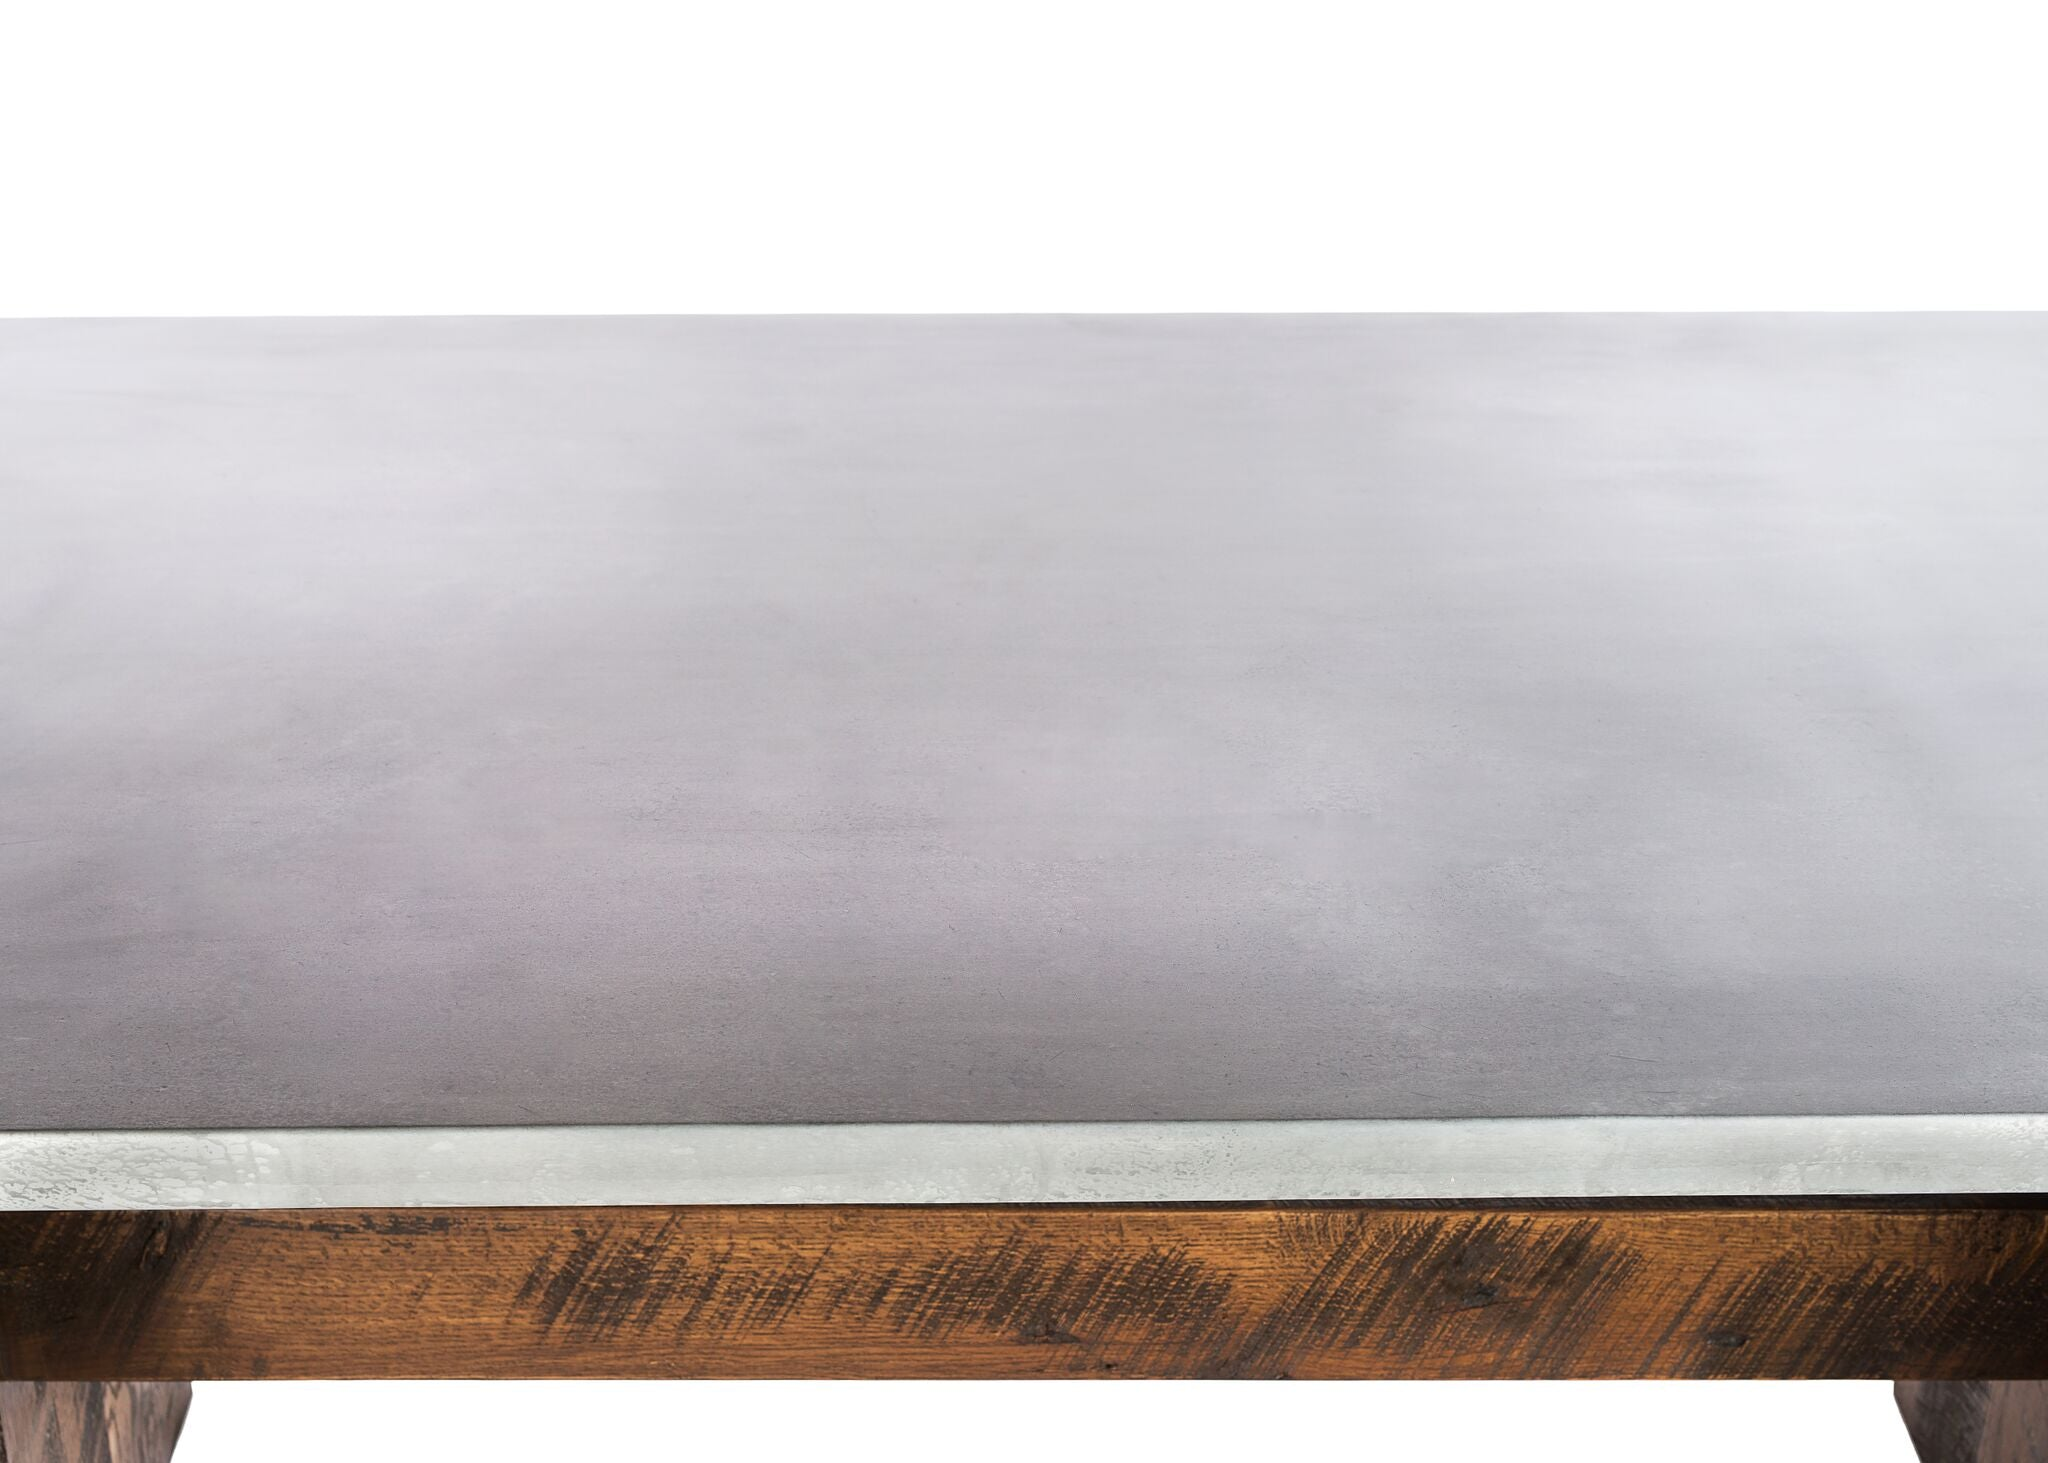 Zinc Table Tops | SIZE: 0 | QTY: 2 | EDGE PROFILE: Double Row of Rivets kingston-krafts-zinc-tables.